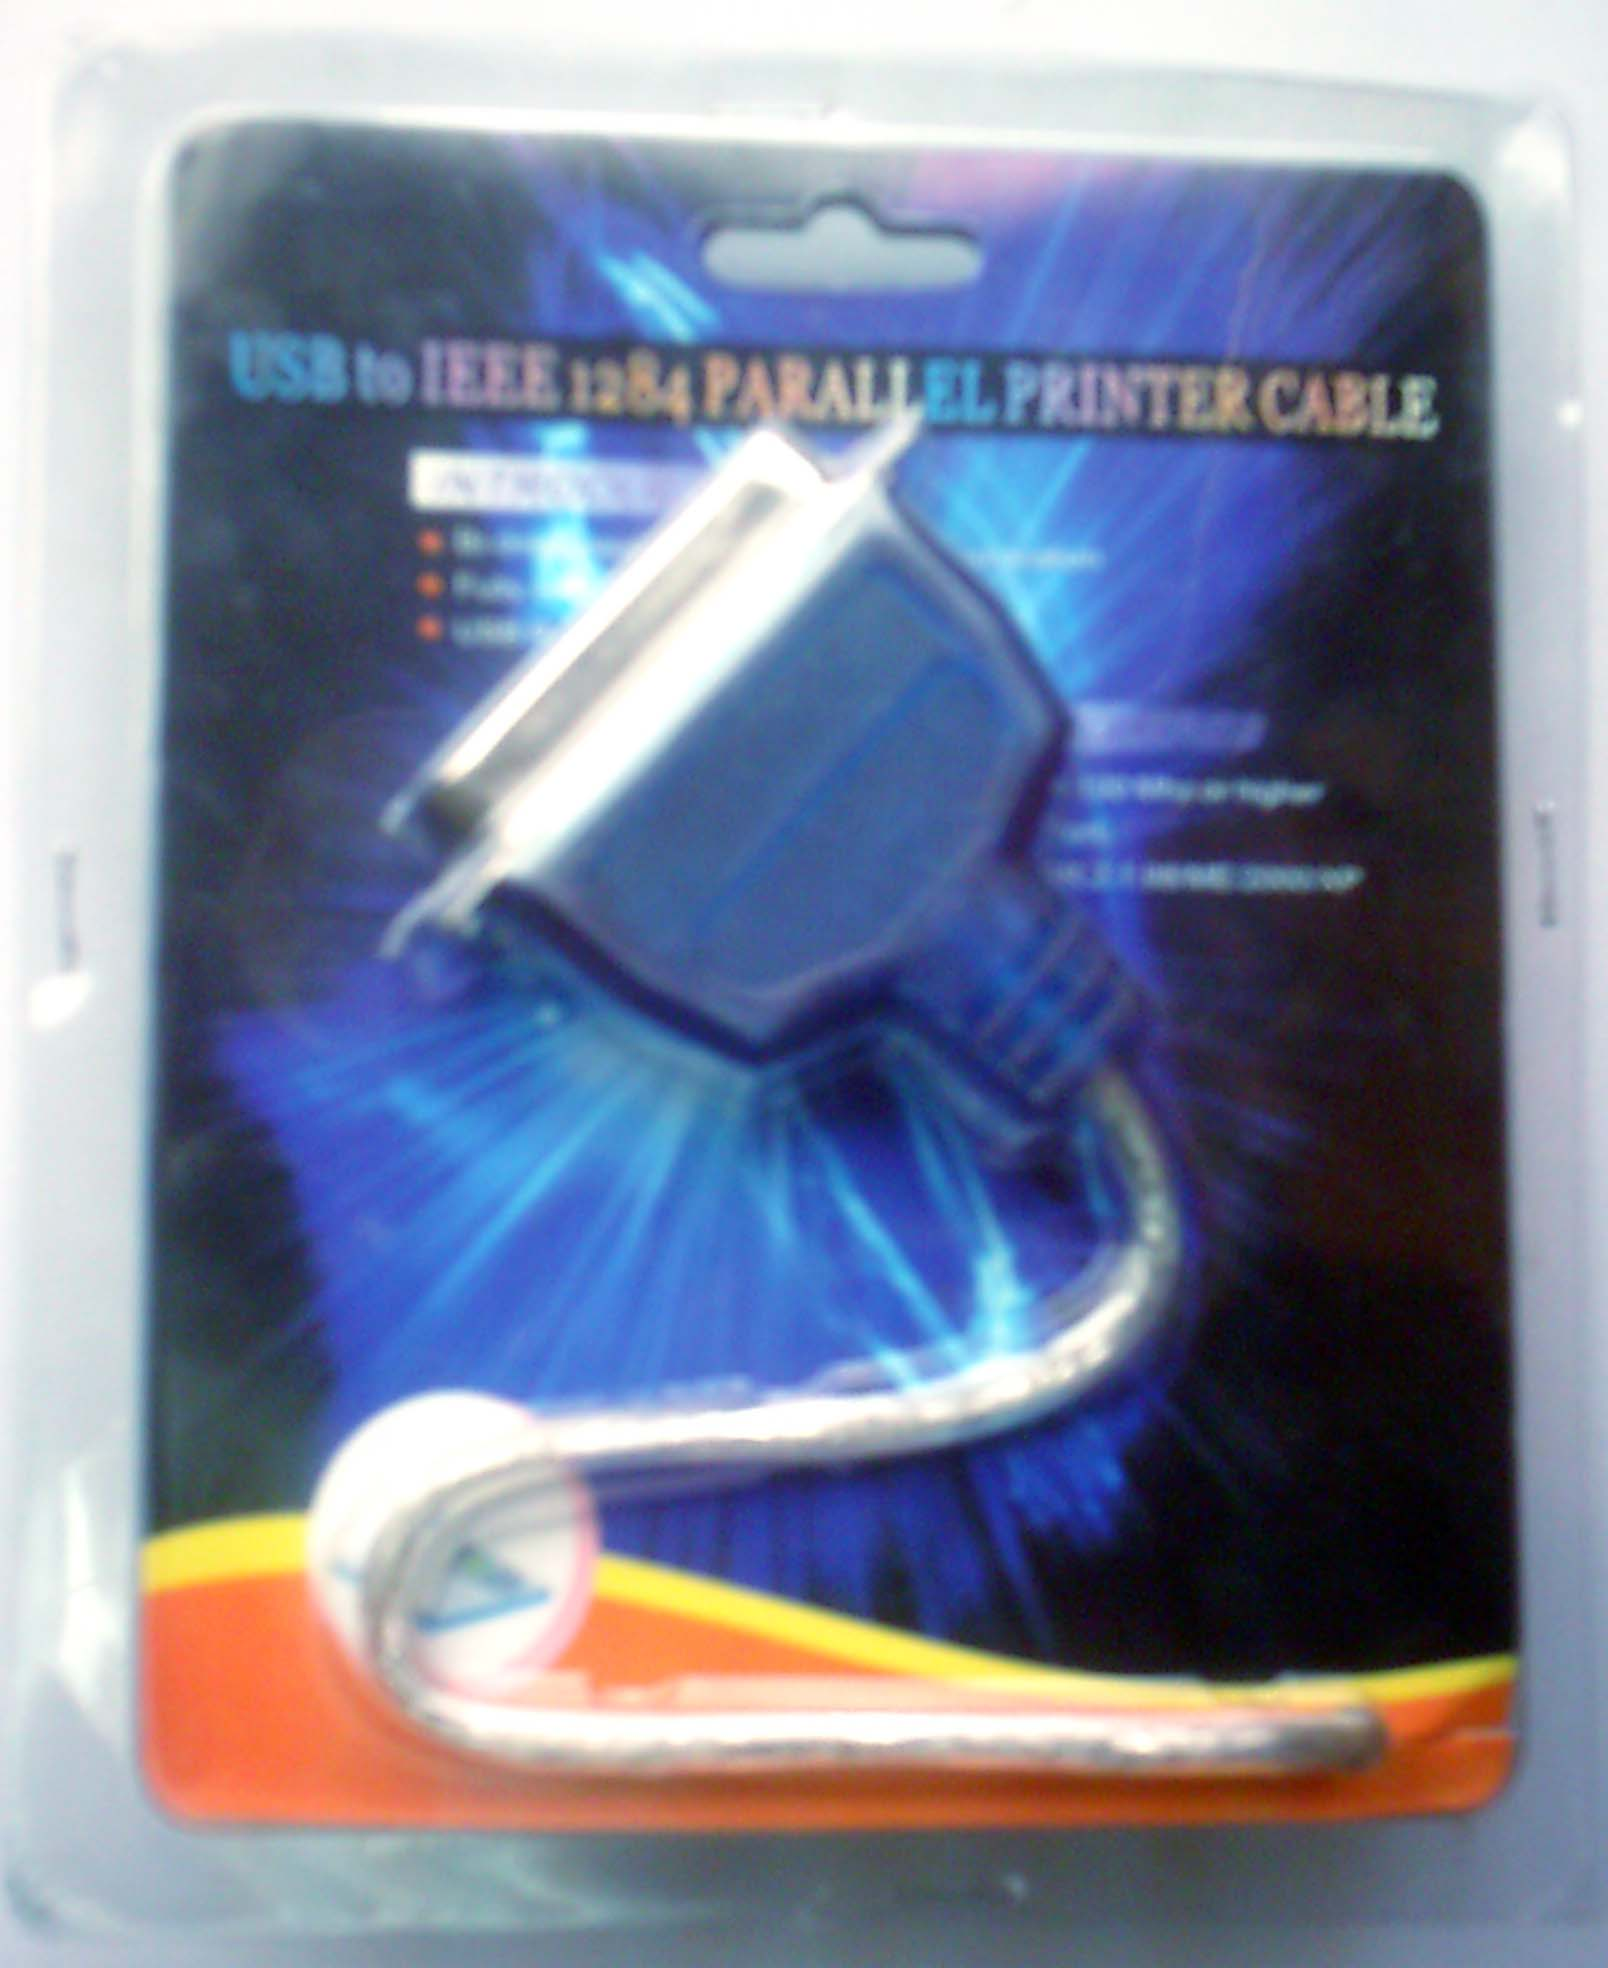 USB to IEEE 1284 Parallel Printer Cable